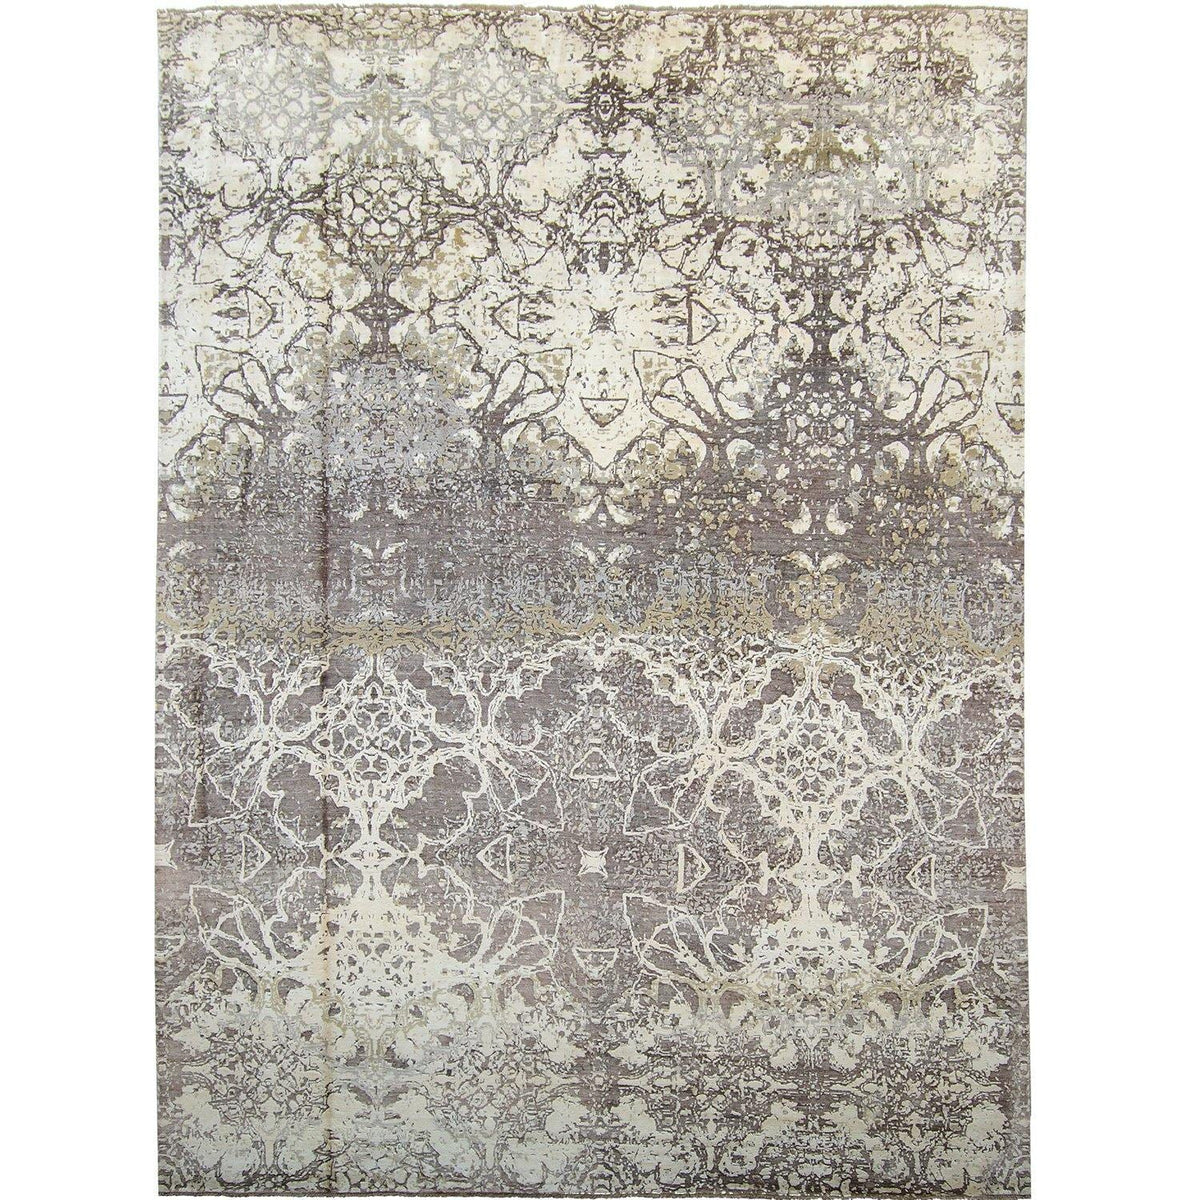 Fine Contemporary Hand-knotted NZ Wool Rug 278cm x 370cm